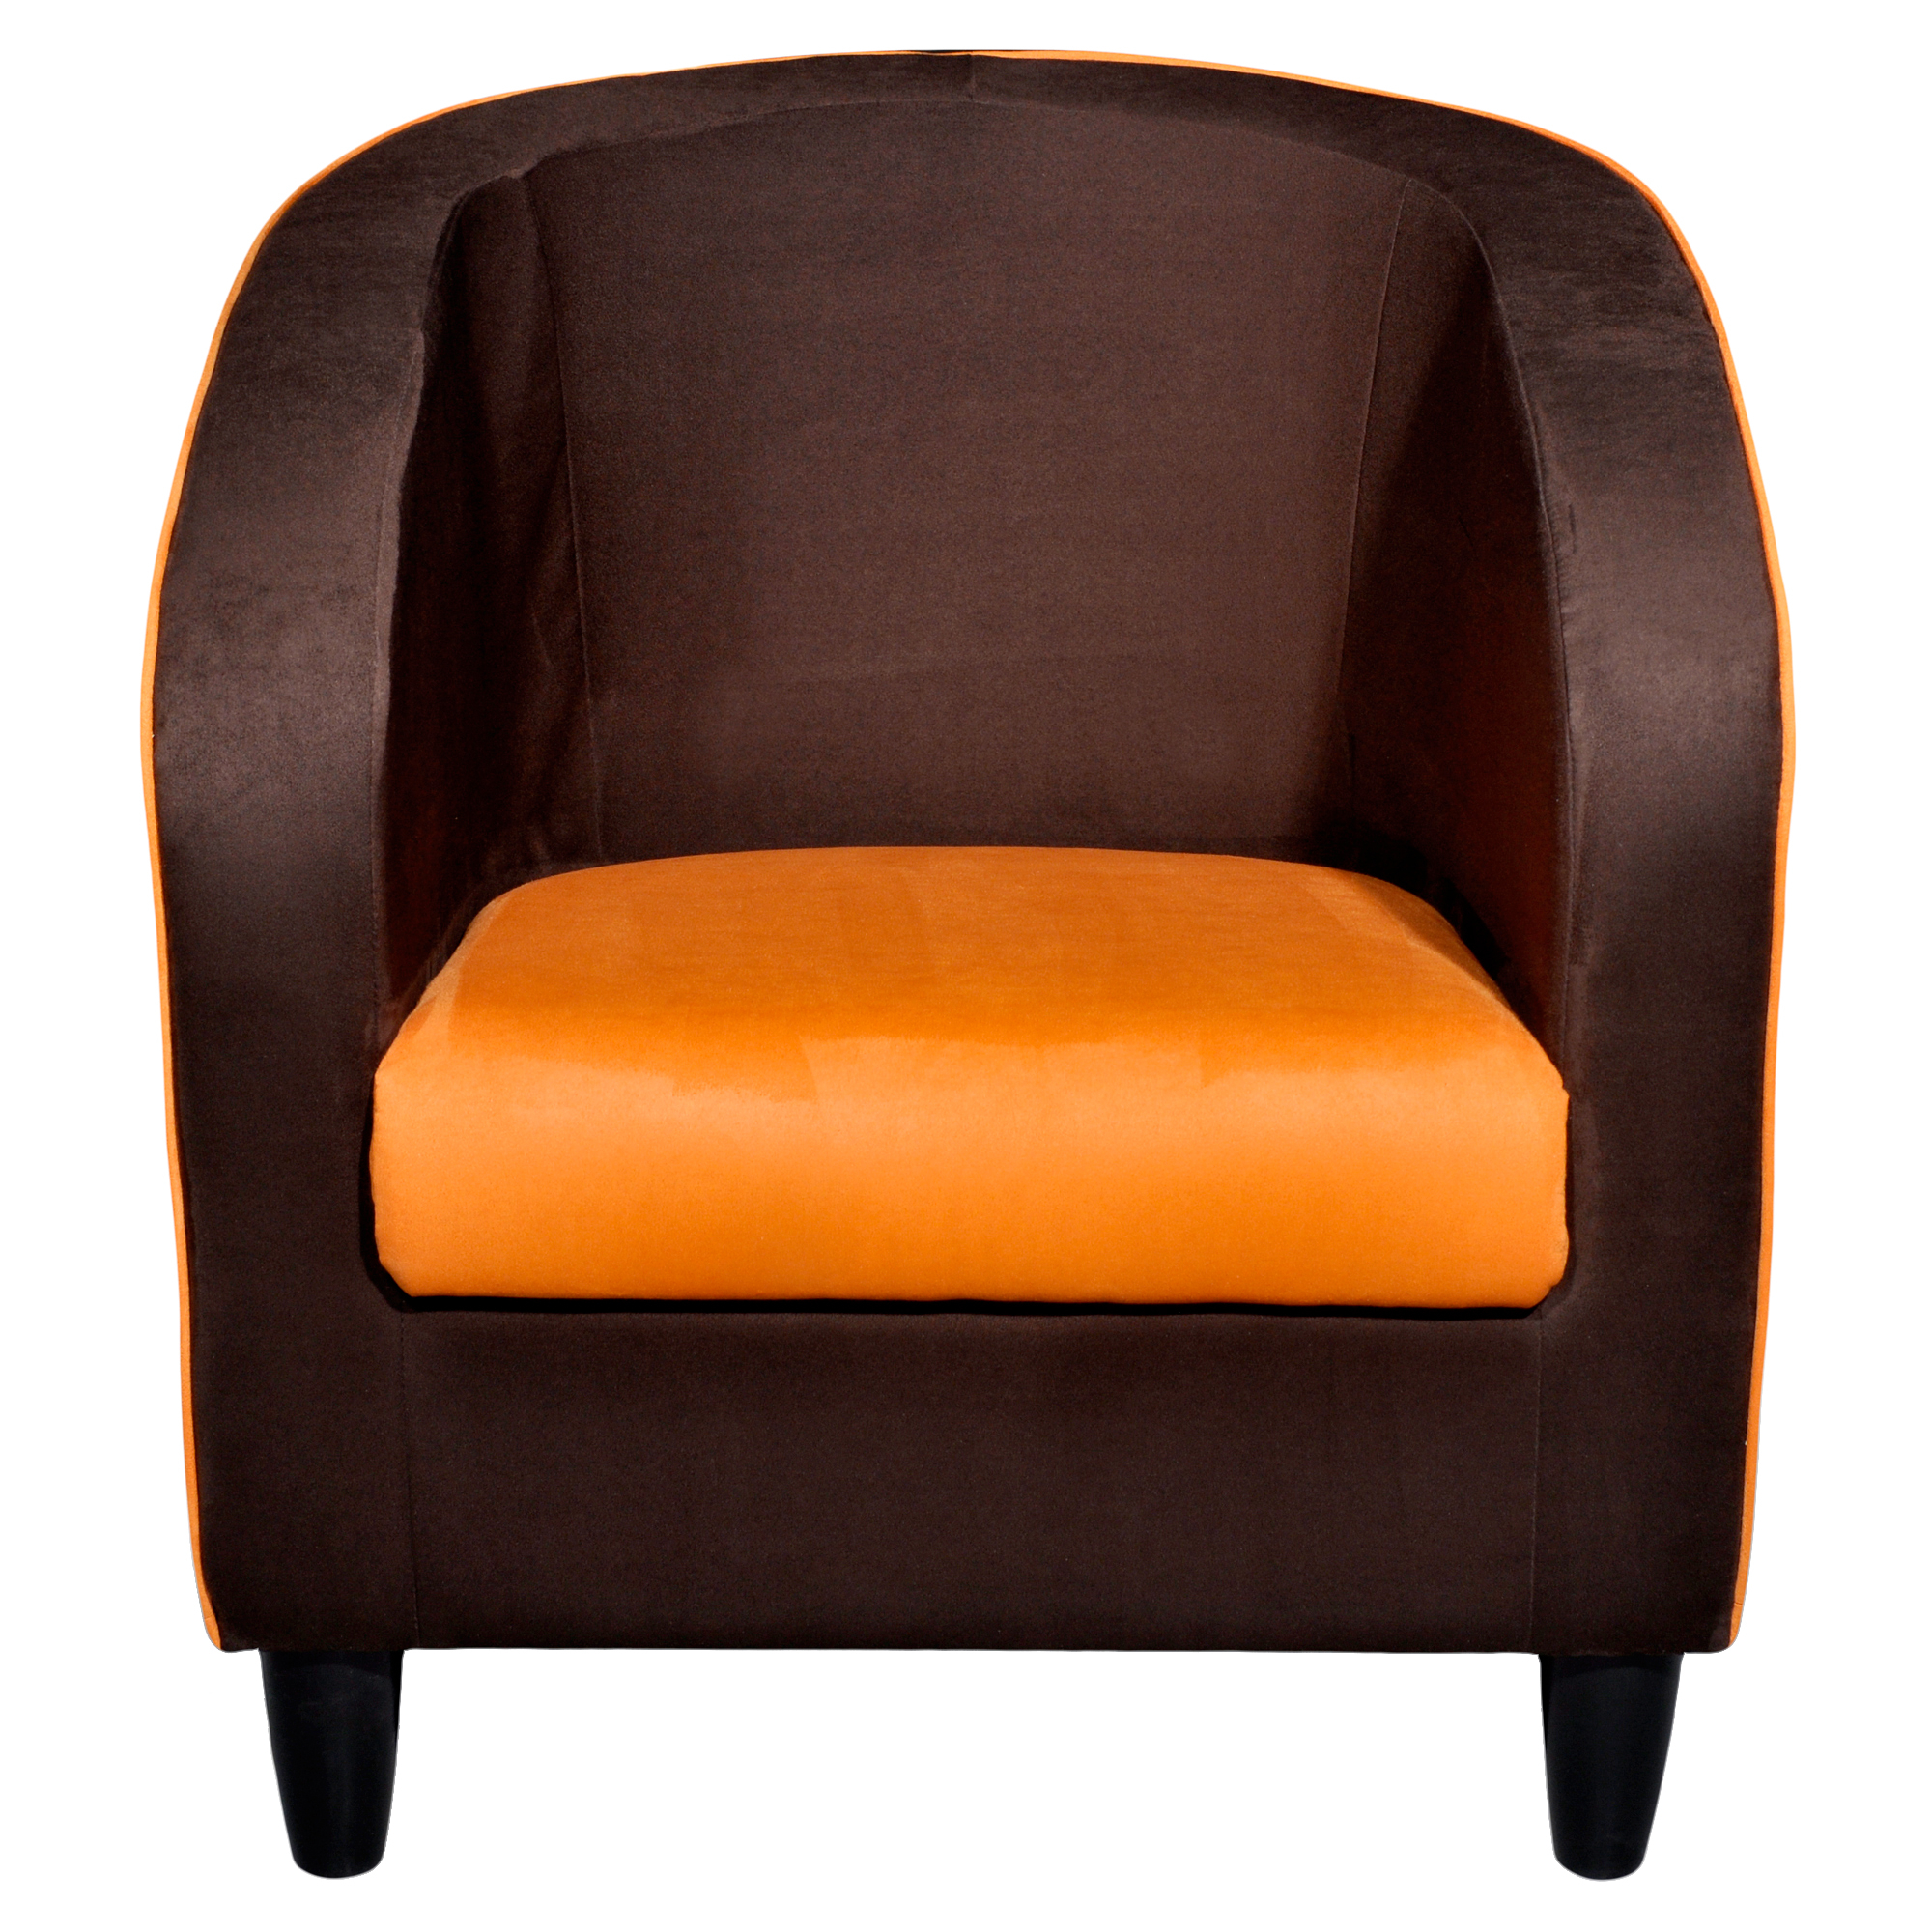 fauteuil la maison de valerie cabriolet moon marron orange. Black Bedroom Furniture Sets. Home Design Ideas